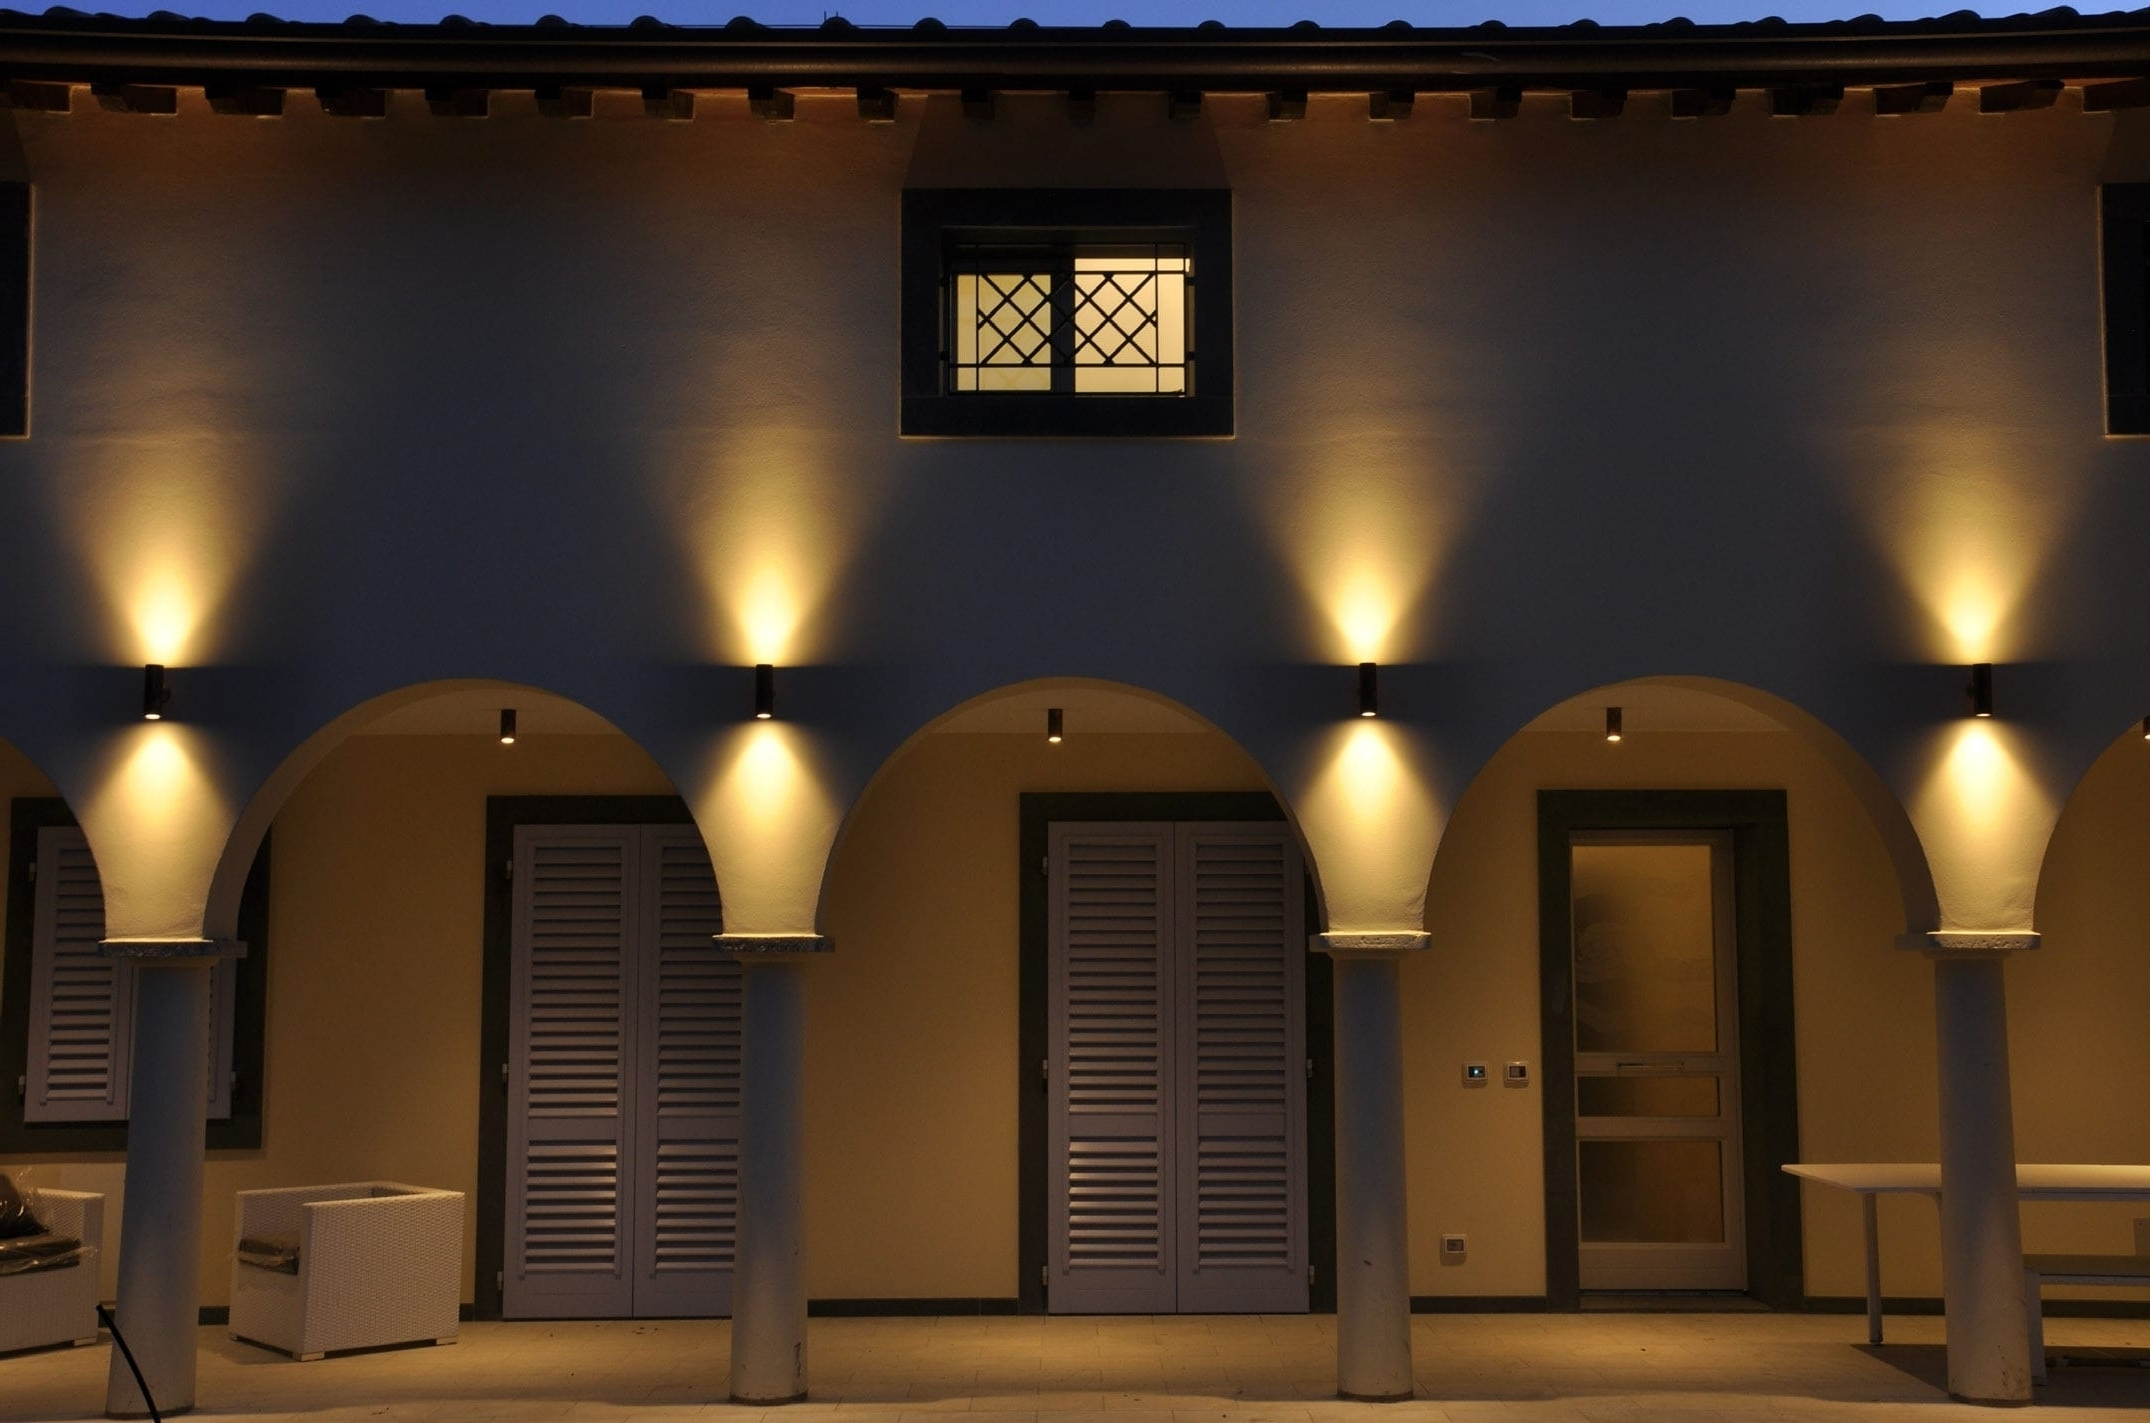 Outdoor Sconces Up Down Lighting – Outdoor Designs In Popular Outdoor Wall Sconce Up Down Lighting (View 2 of 20)